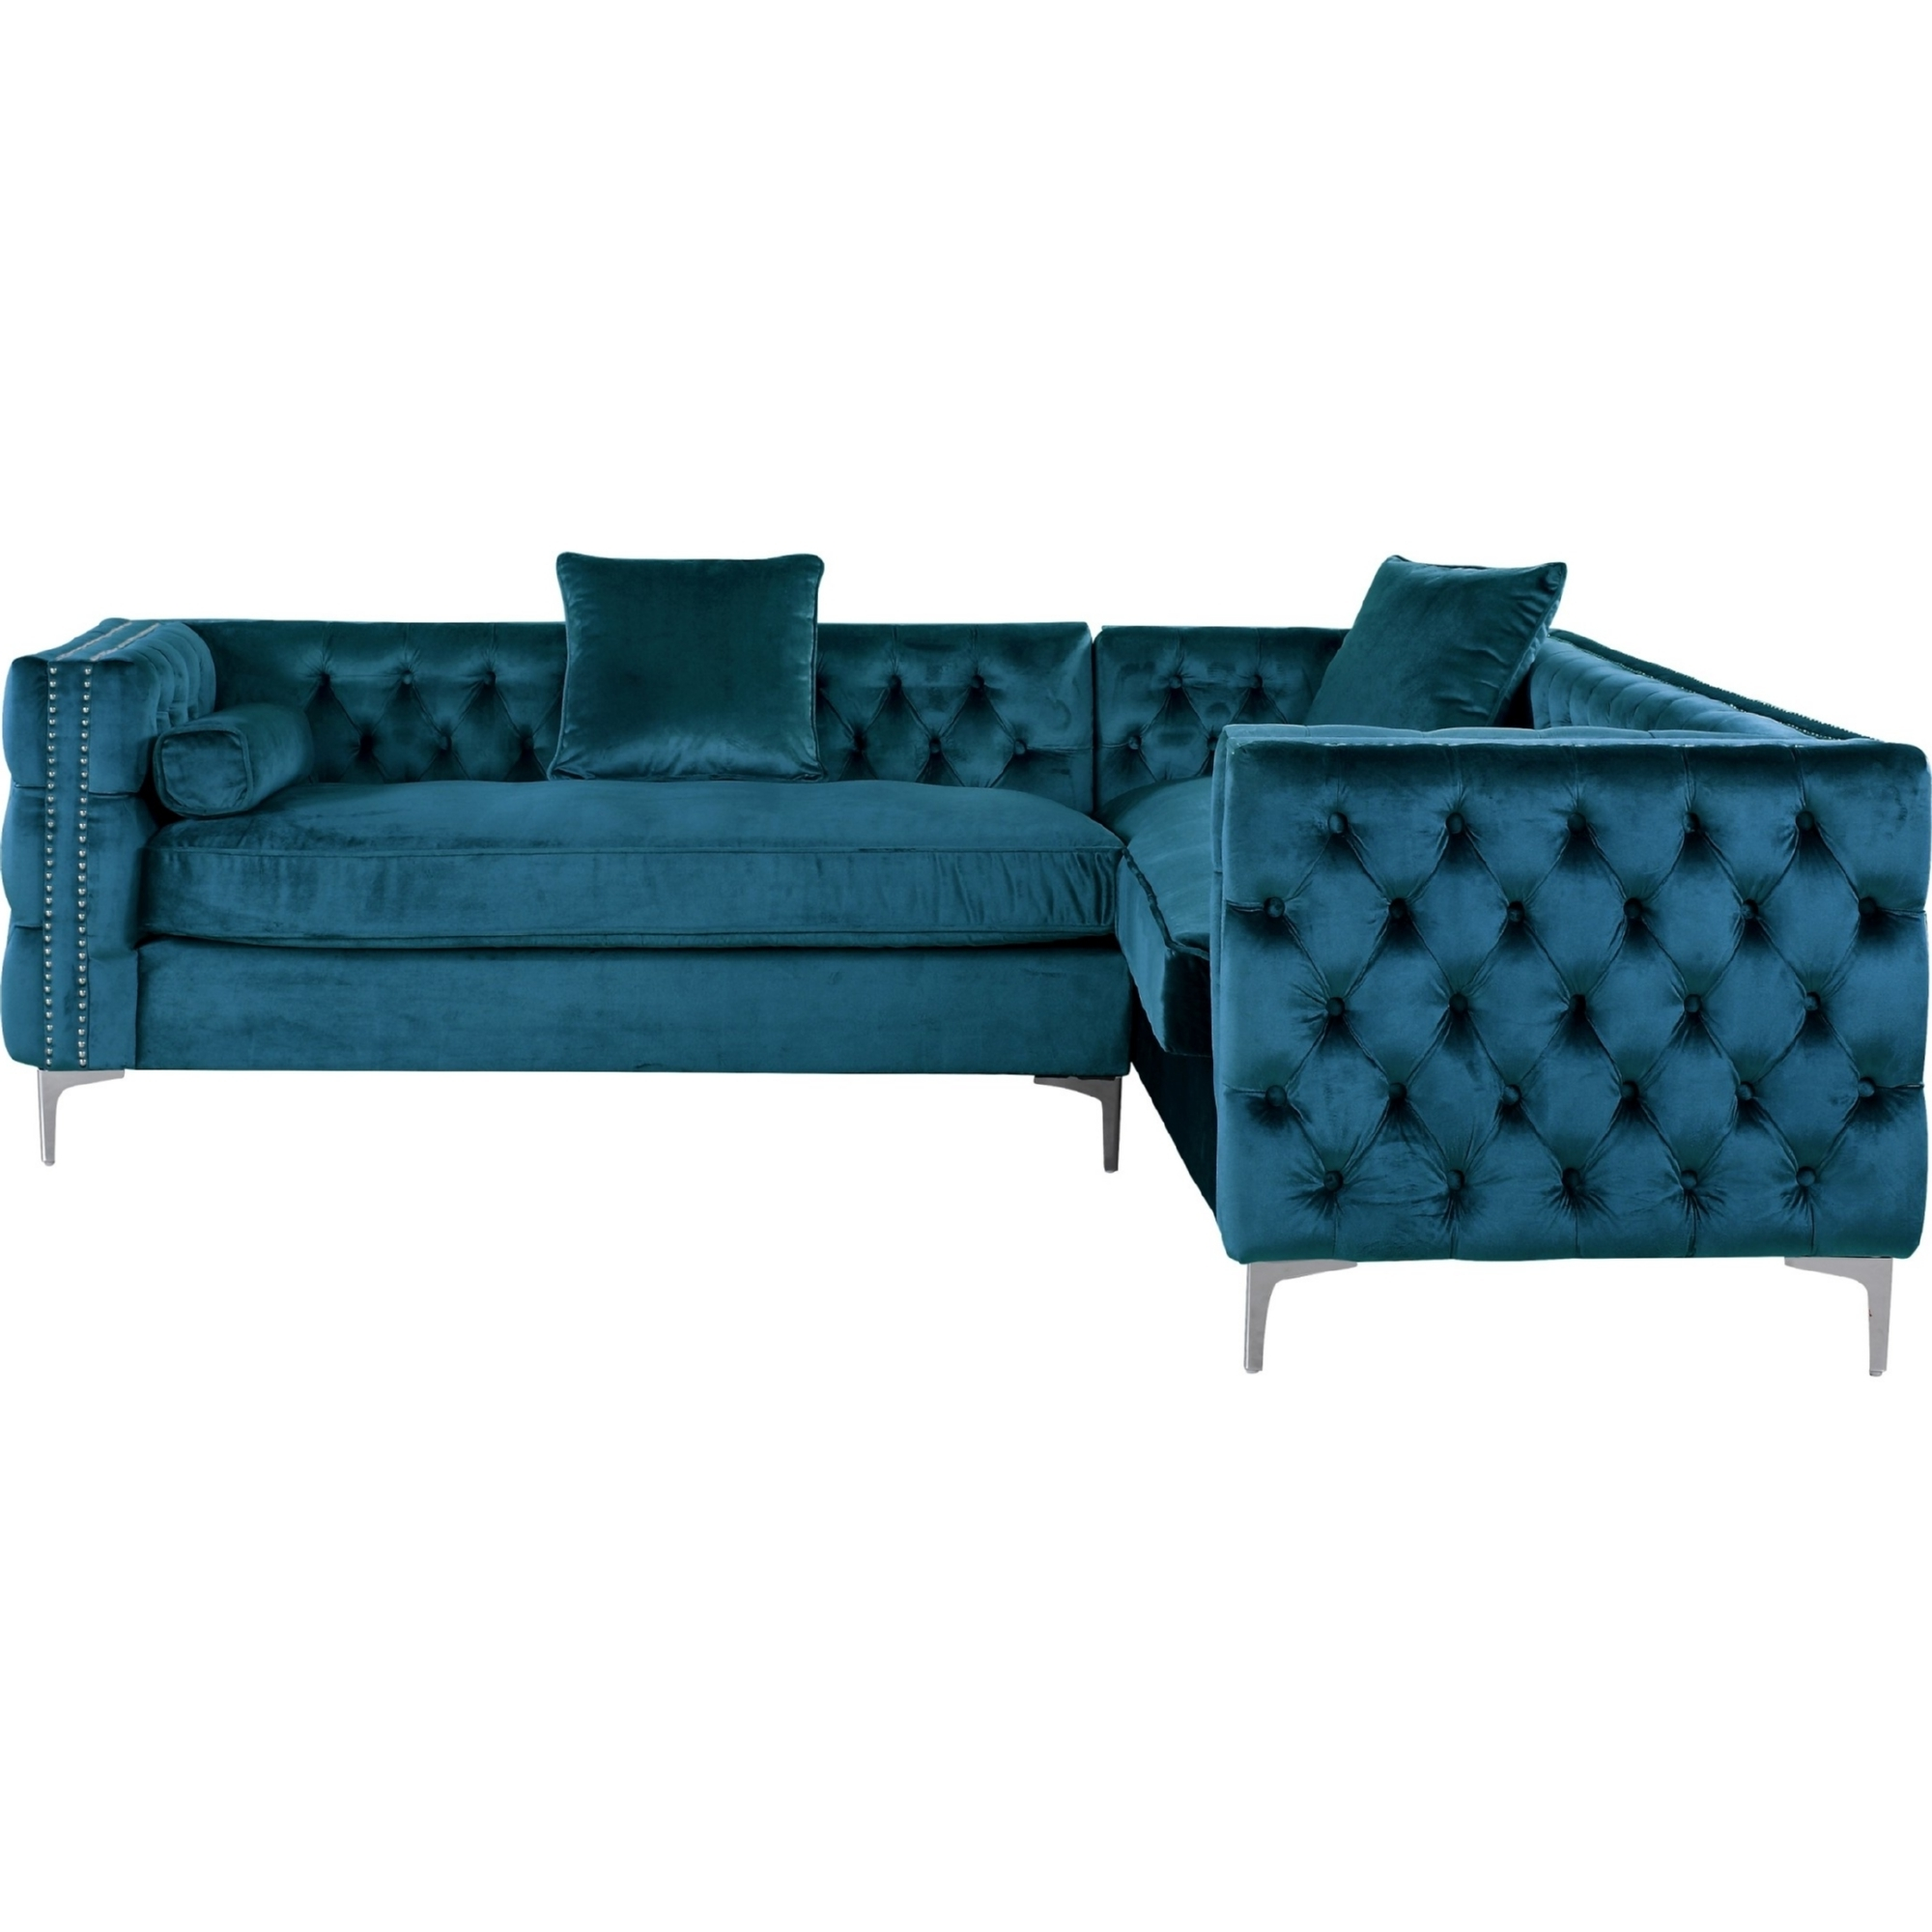 Well Known Jordans Sectional Sofas For Chic Home Mozart Left Sectional Sofa W/ Right Hand Chaise In (View 20 of 20)